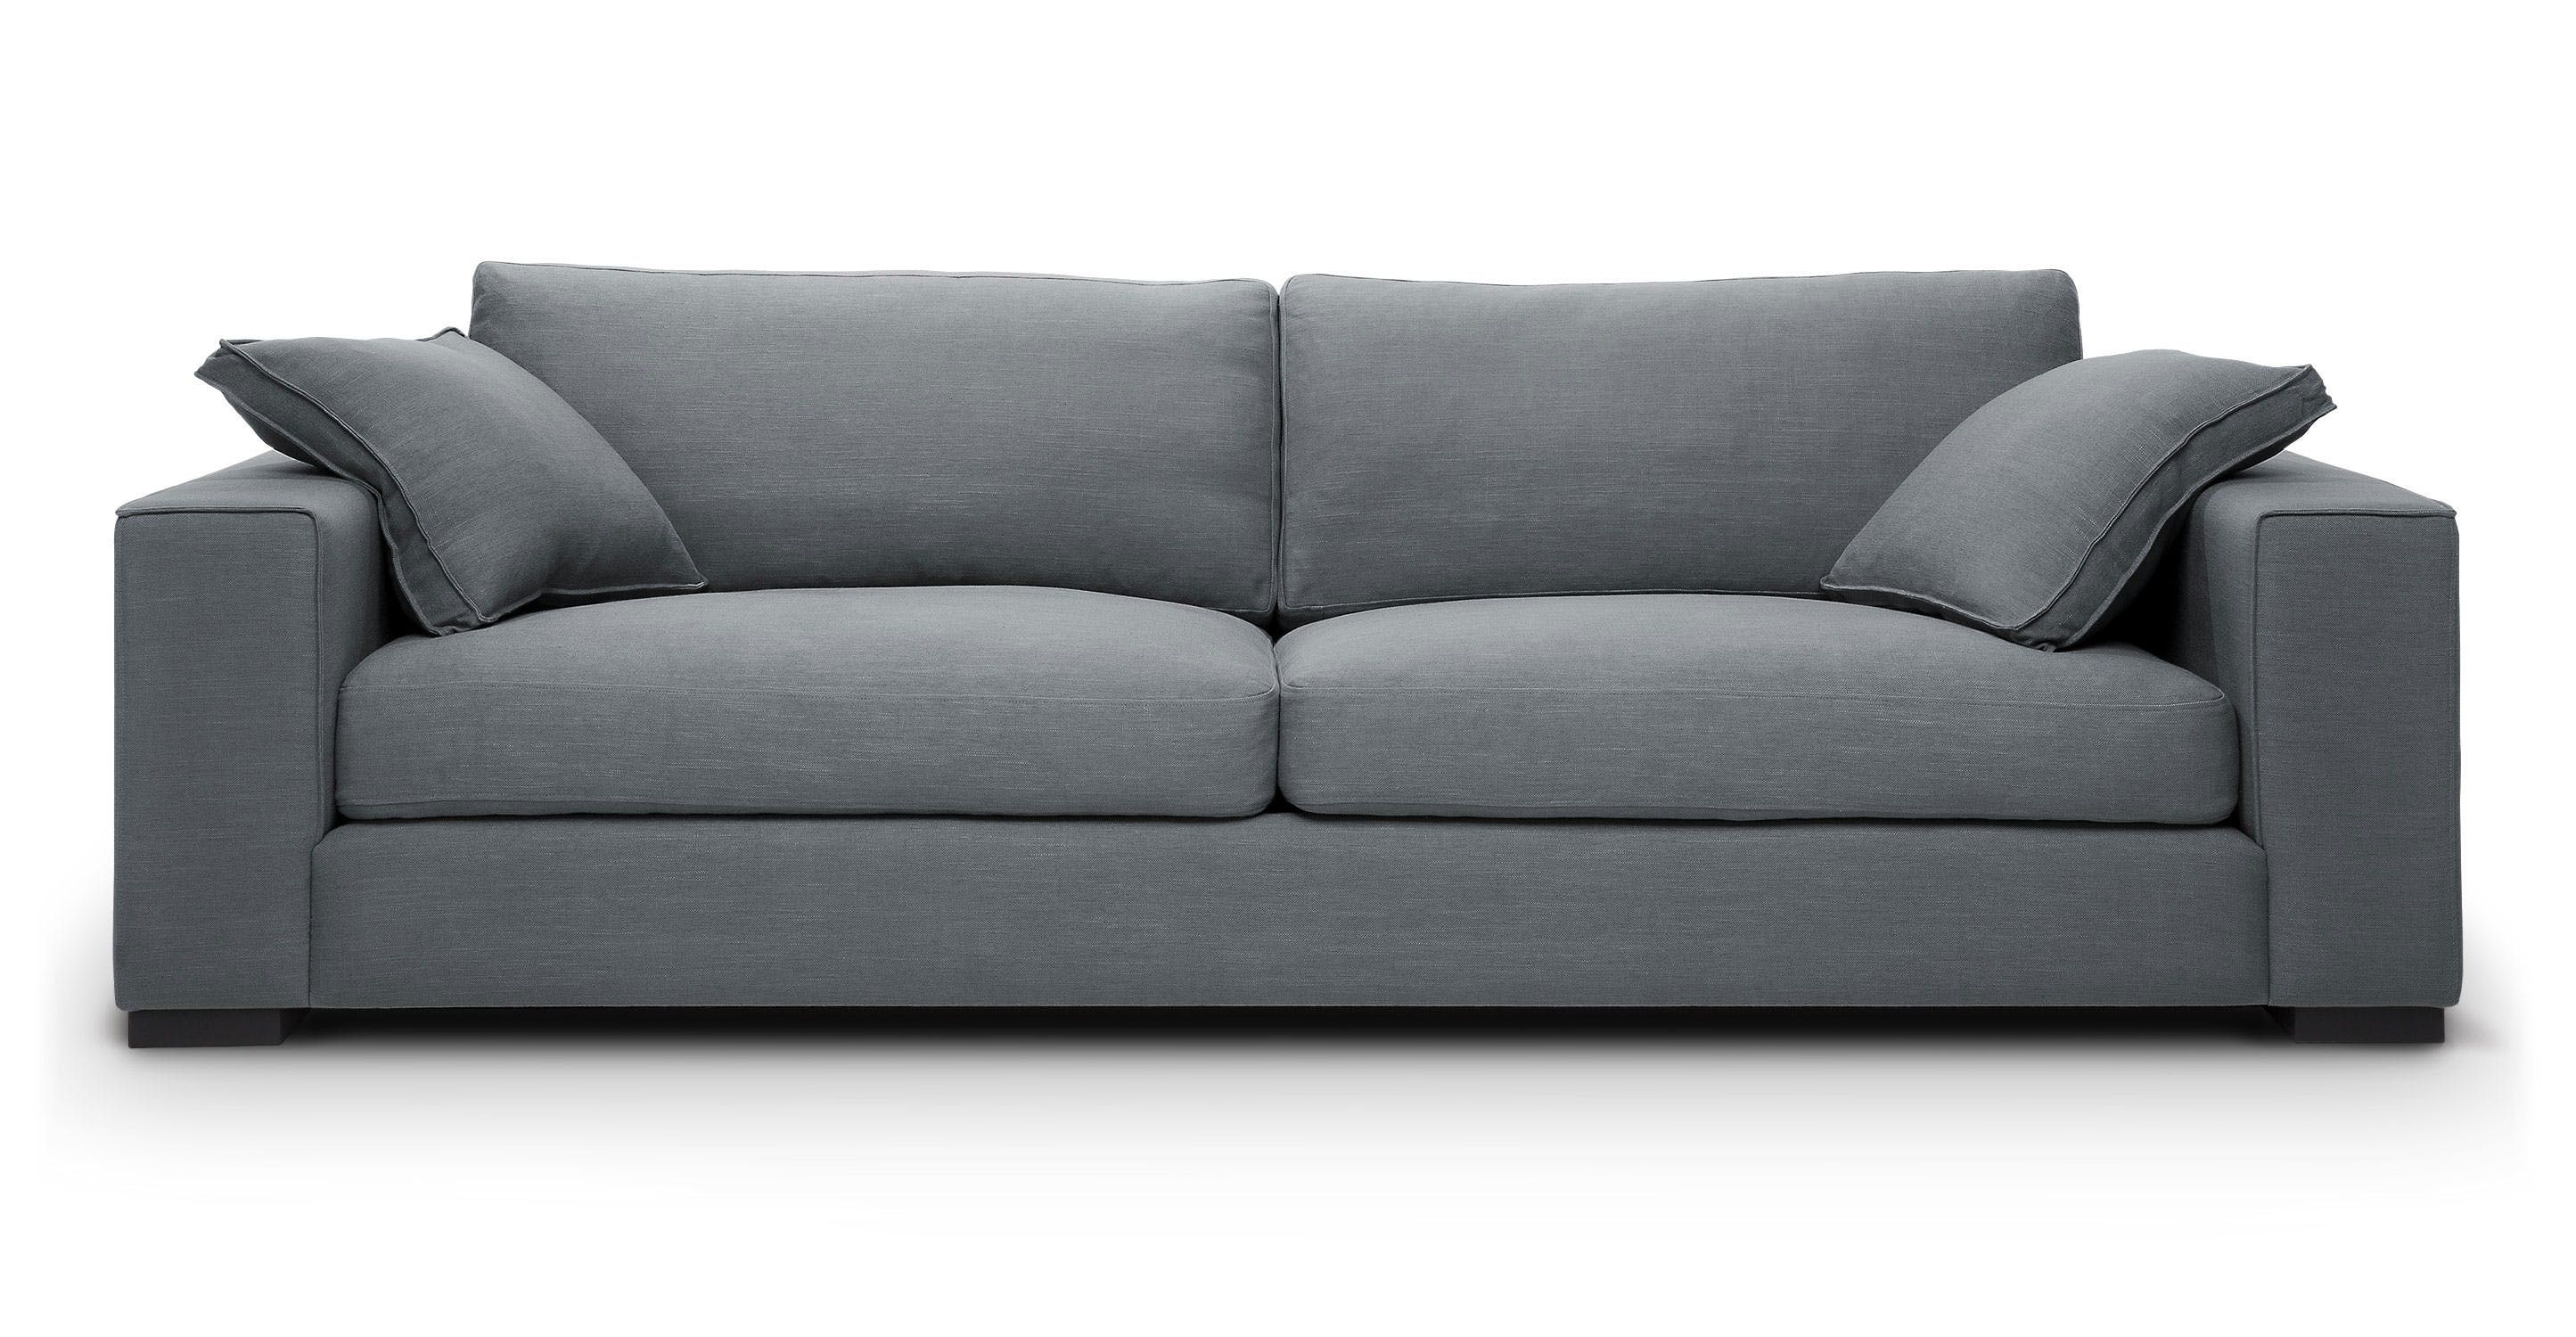 Most comfortable sofa - Reviewed The Most Comfortable Sofas At Article